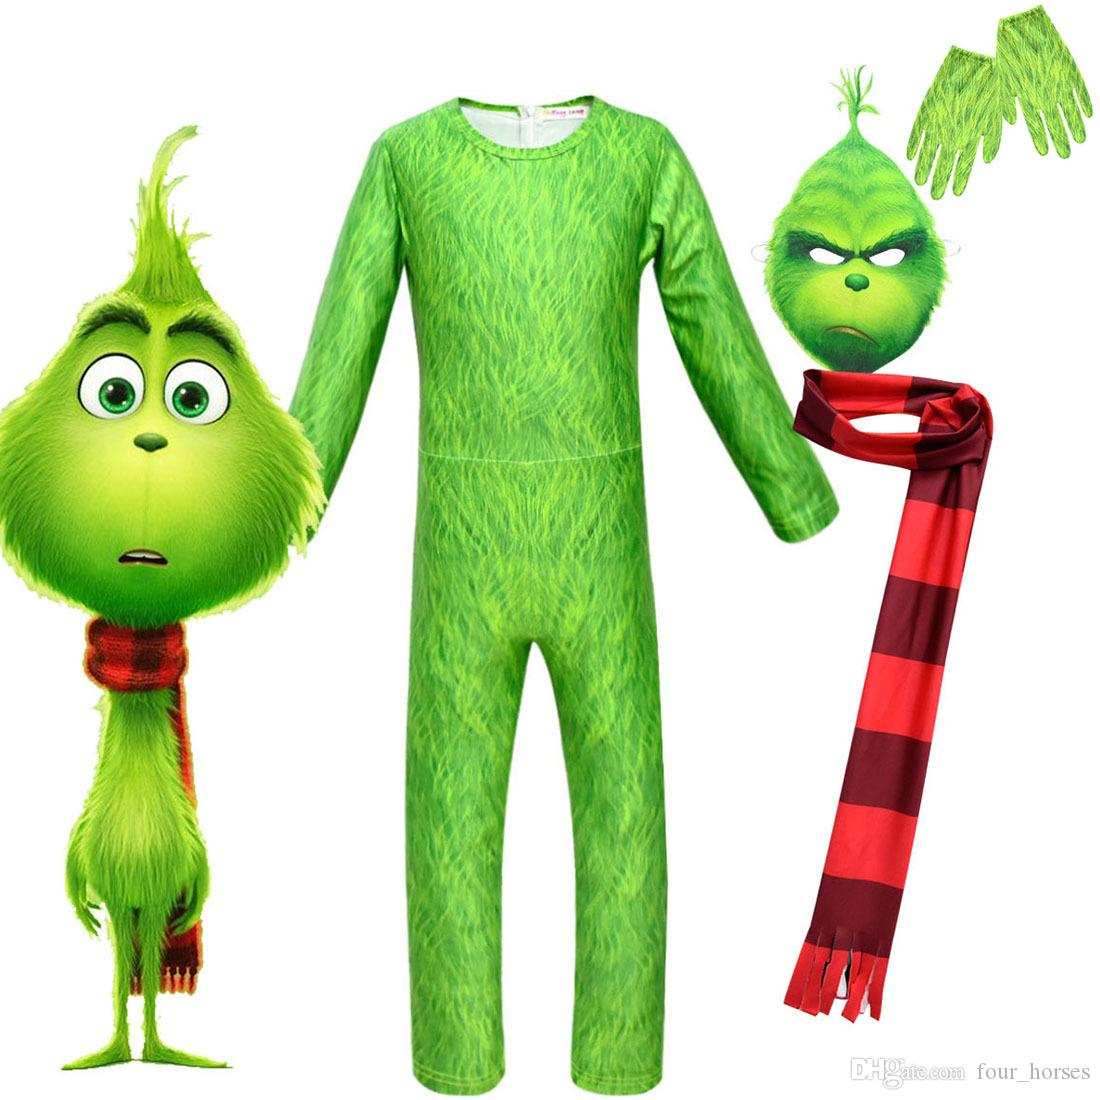 The Grinch Cosplay Costumes How The Grinch Stole Christmas Costume  Christmas Props With Green Hair Kids Jumpsuits Mask Scarf Dress Themes For  Parties